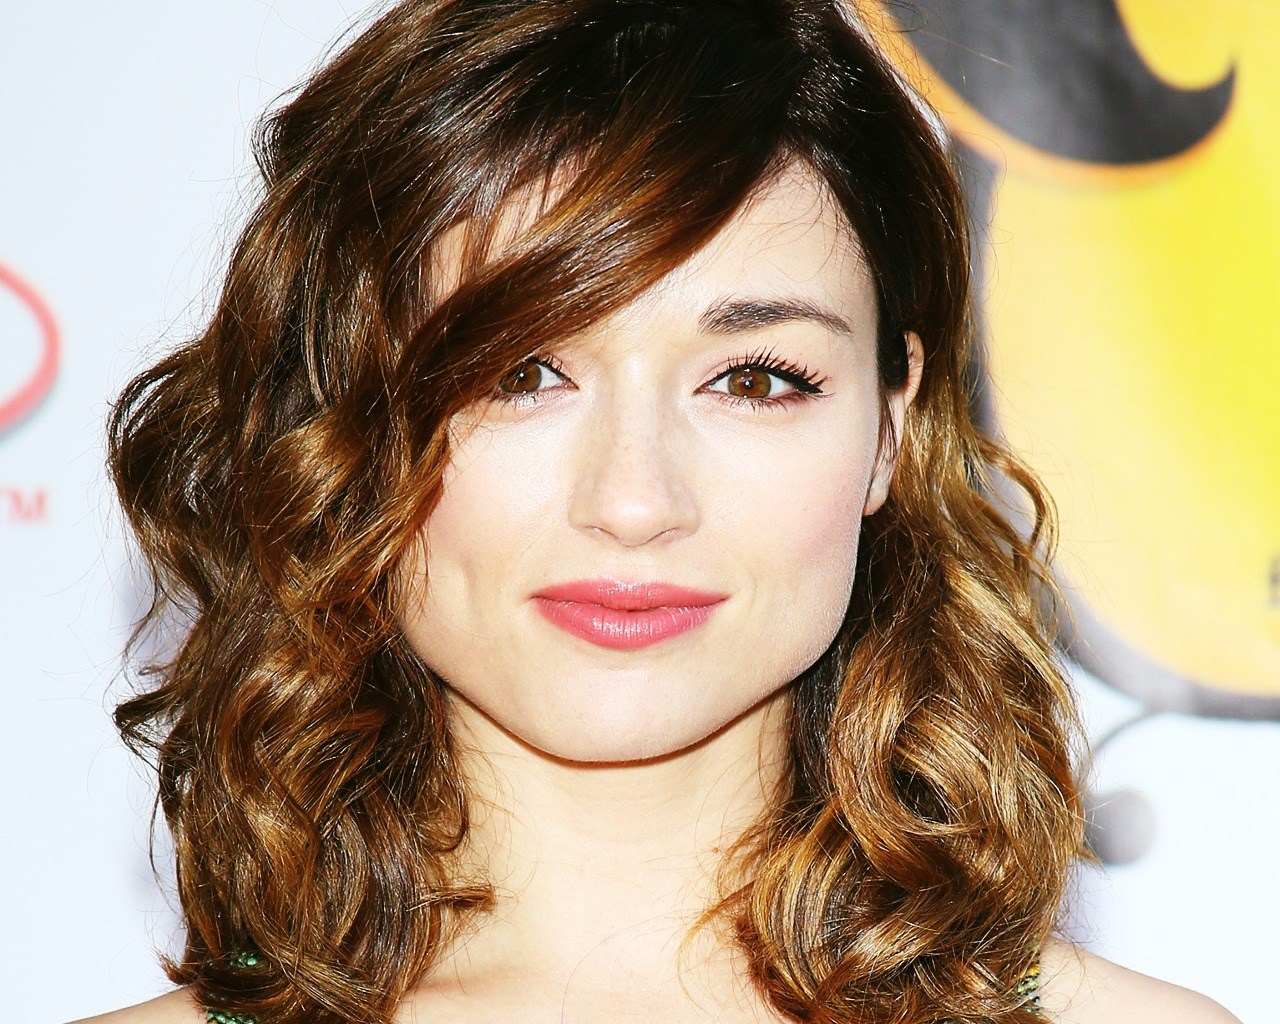 1280x1024 - Crystal Reed Wallpapers 24